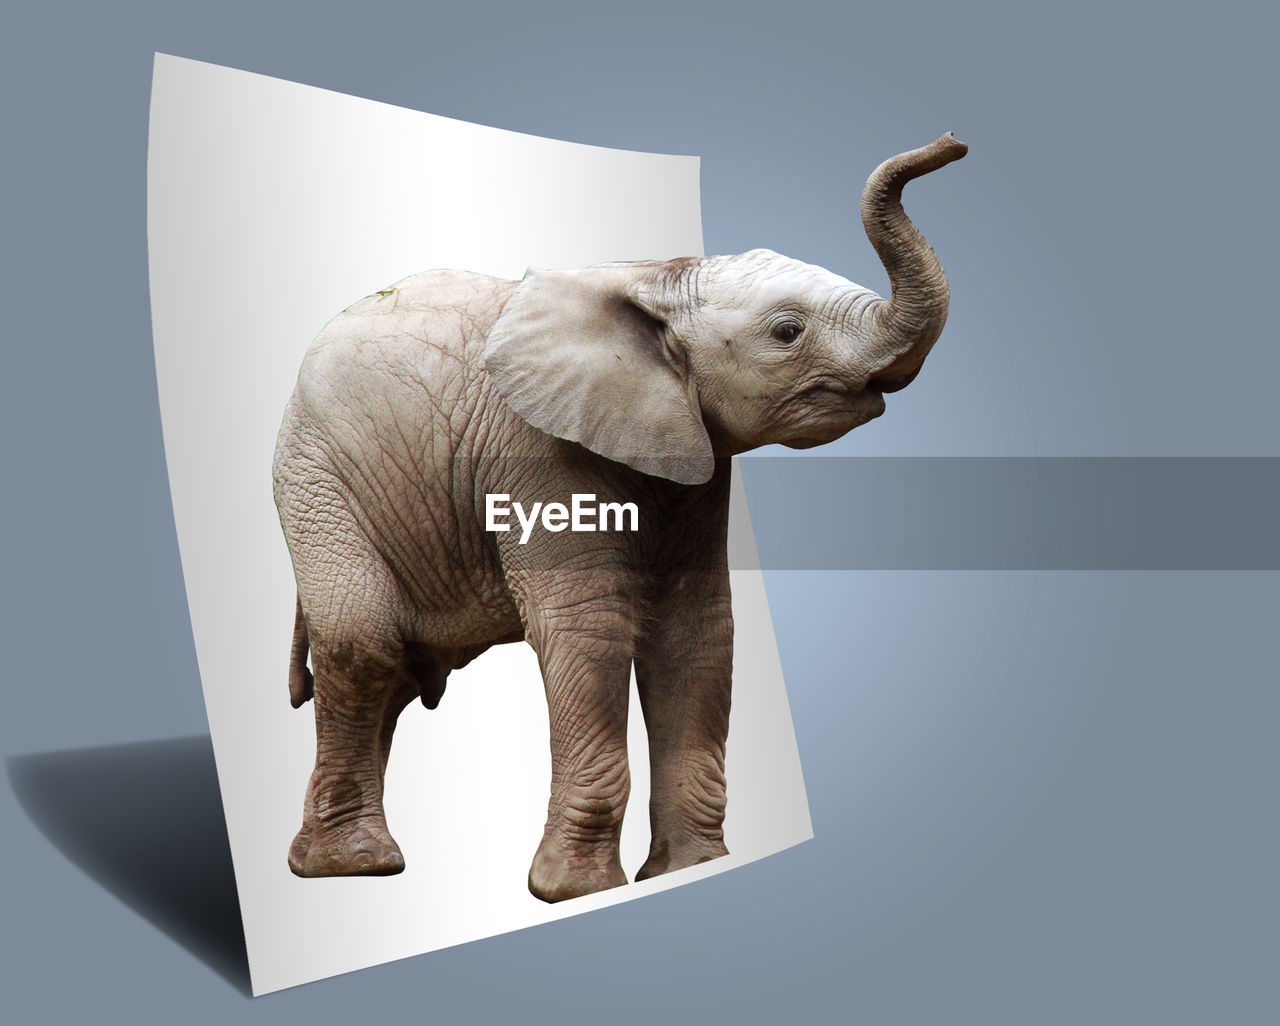 SIDE VIEW OF ELEPHANT AGAINST WHITE BACKGROUND